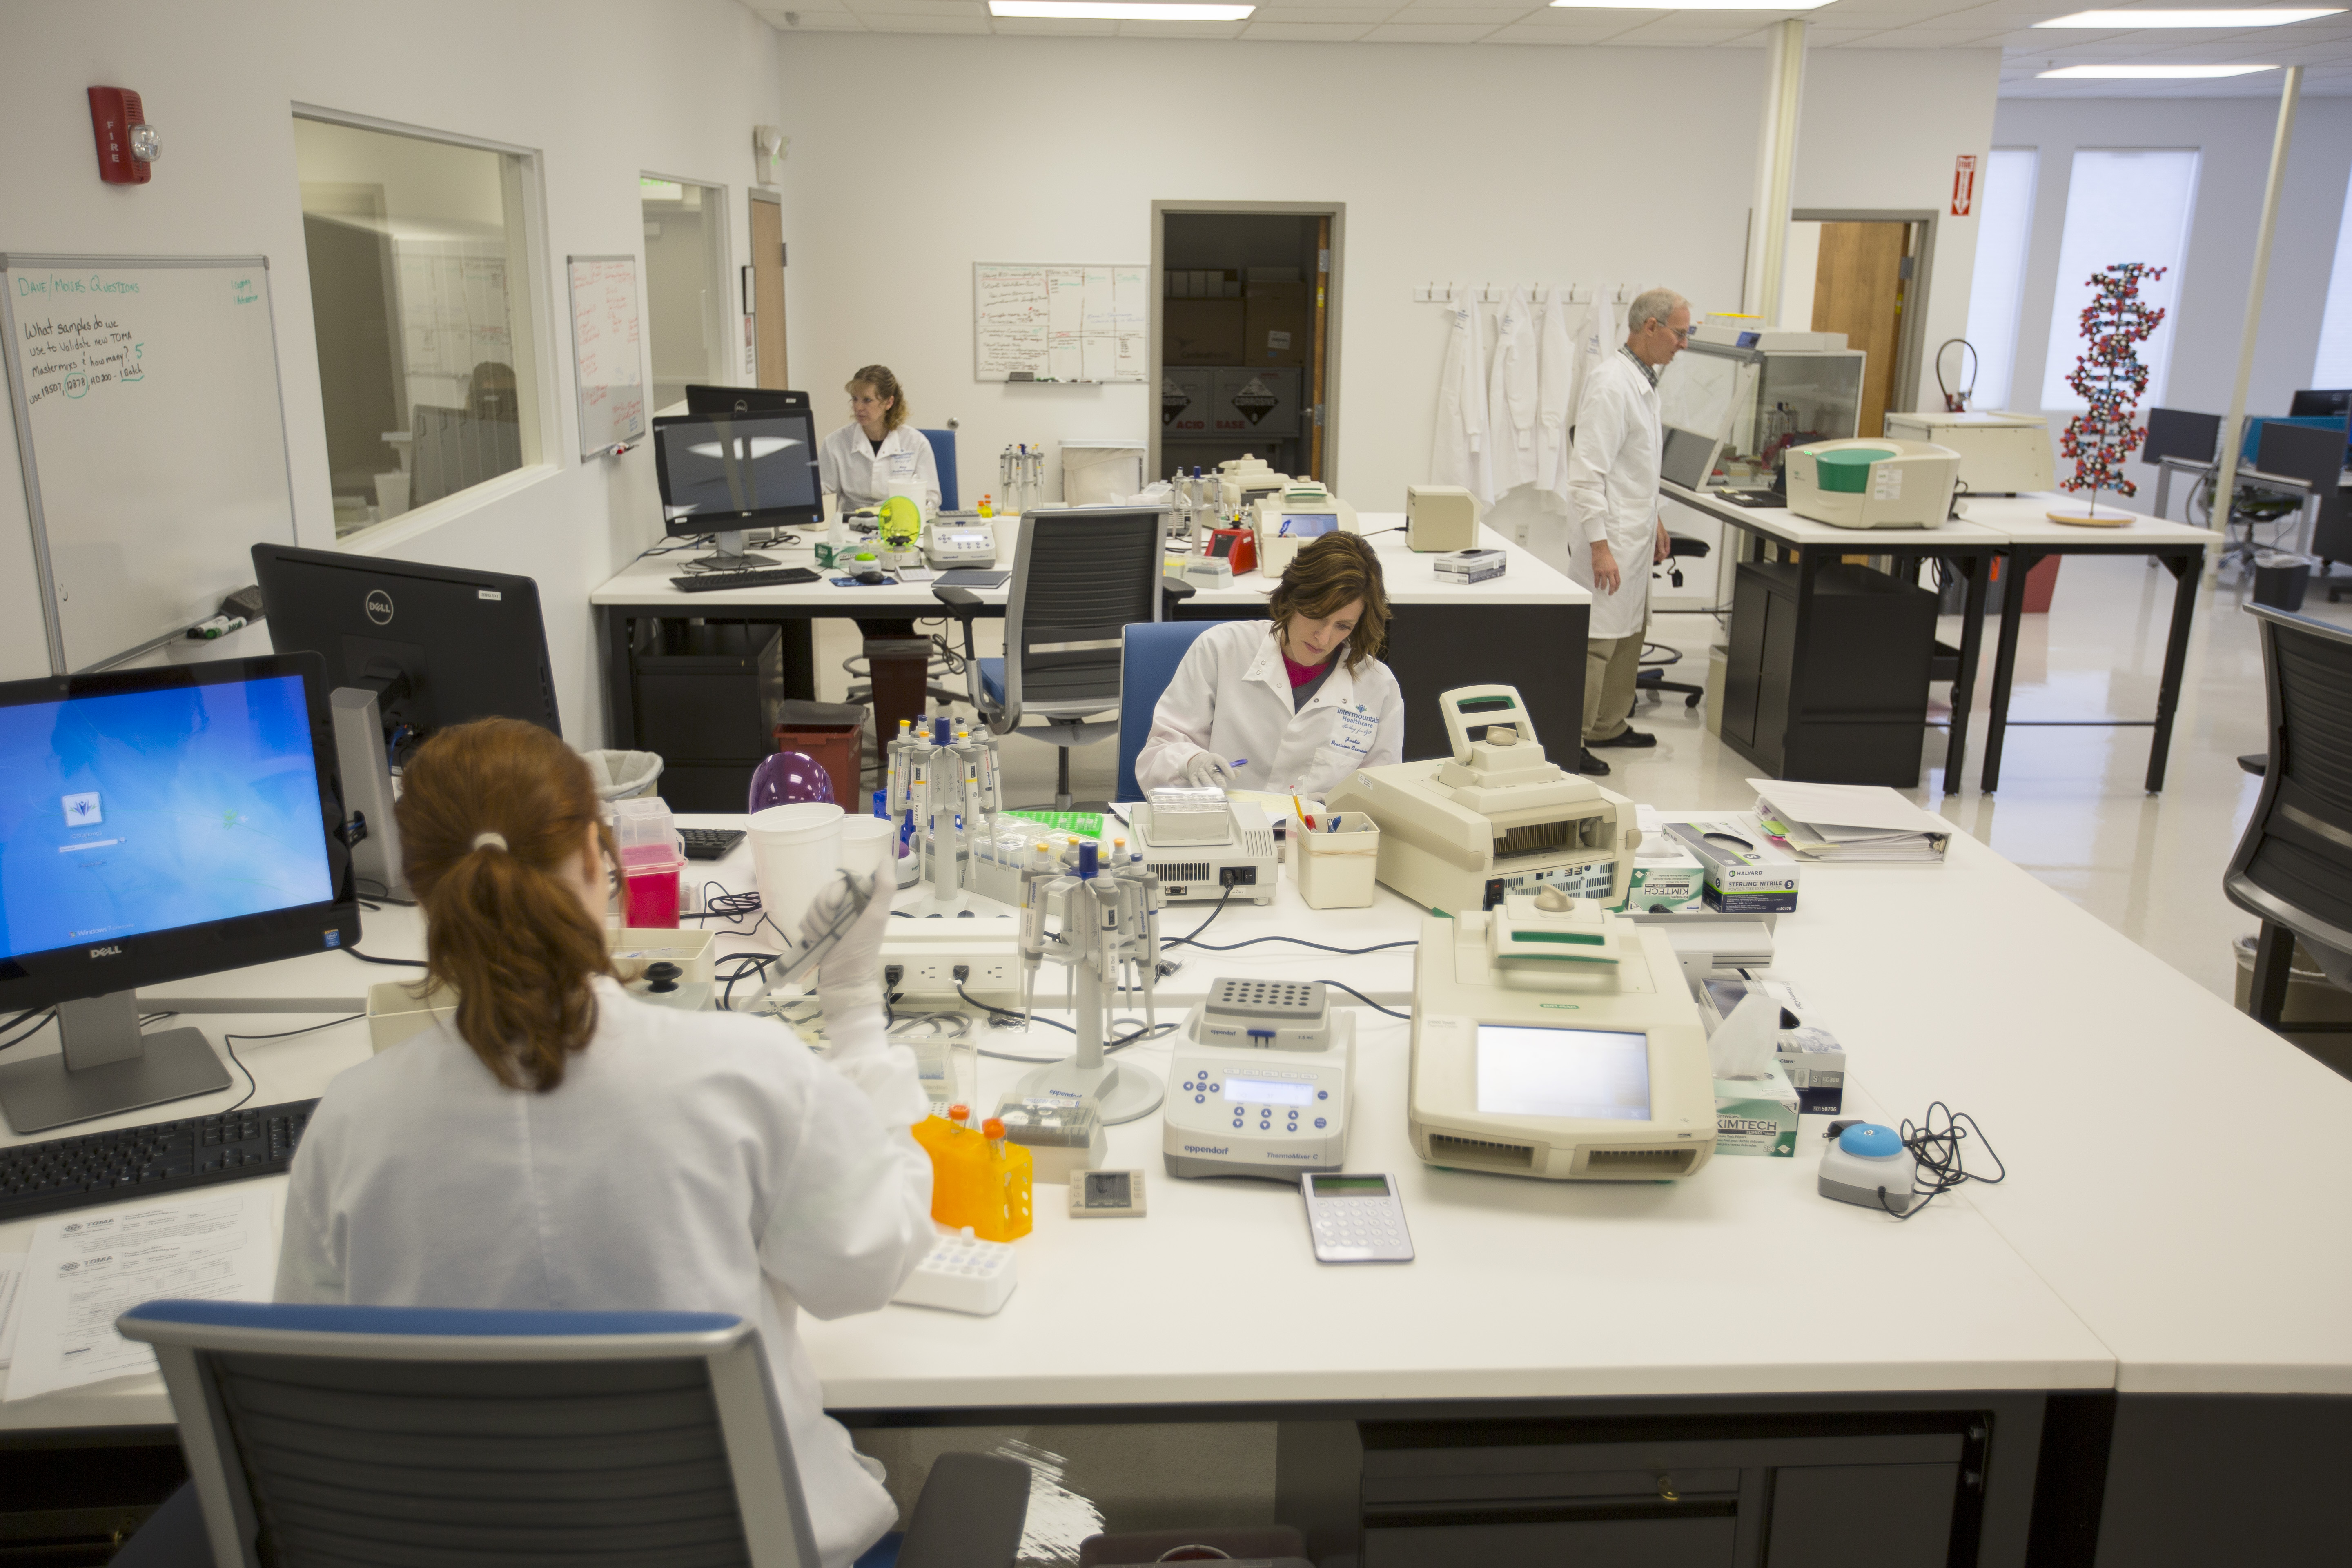 Aimee Shamo, Pat Bradley, Jackie Wayne and Sara King process samples in the core laboratory at Intermountain Precision Genomics, St. George, Utah, circa 2014-15 | Photo courtesy of Intermountain Healthcare, St. George News